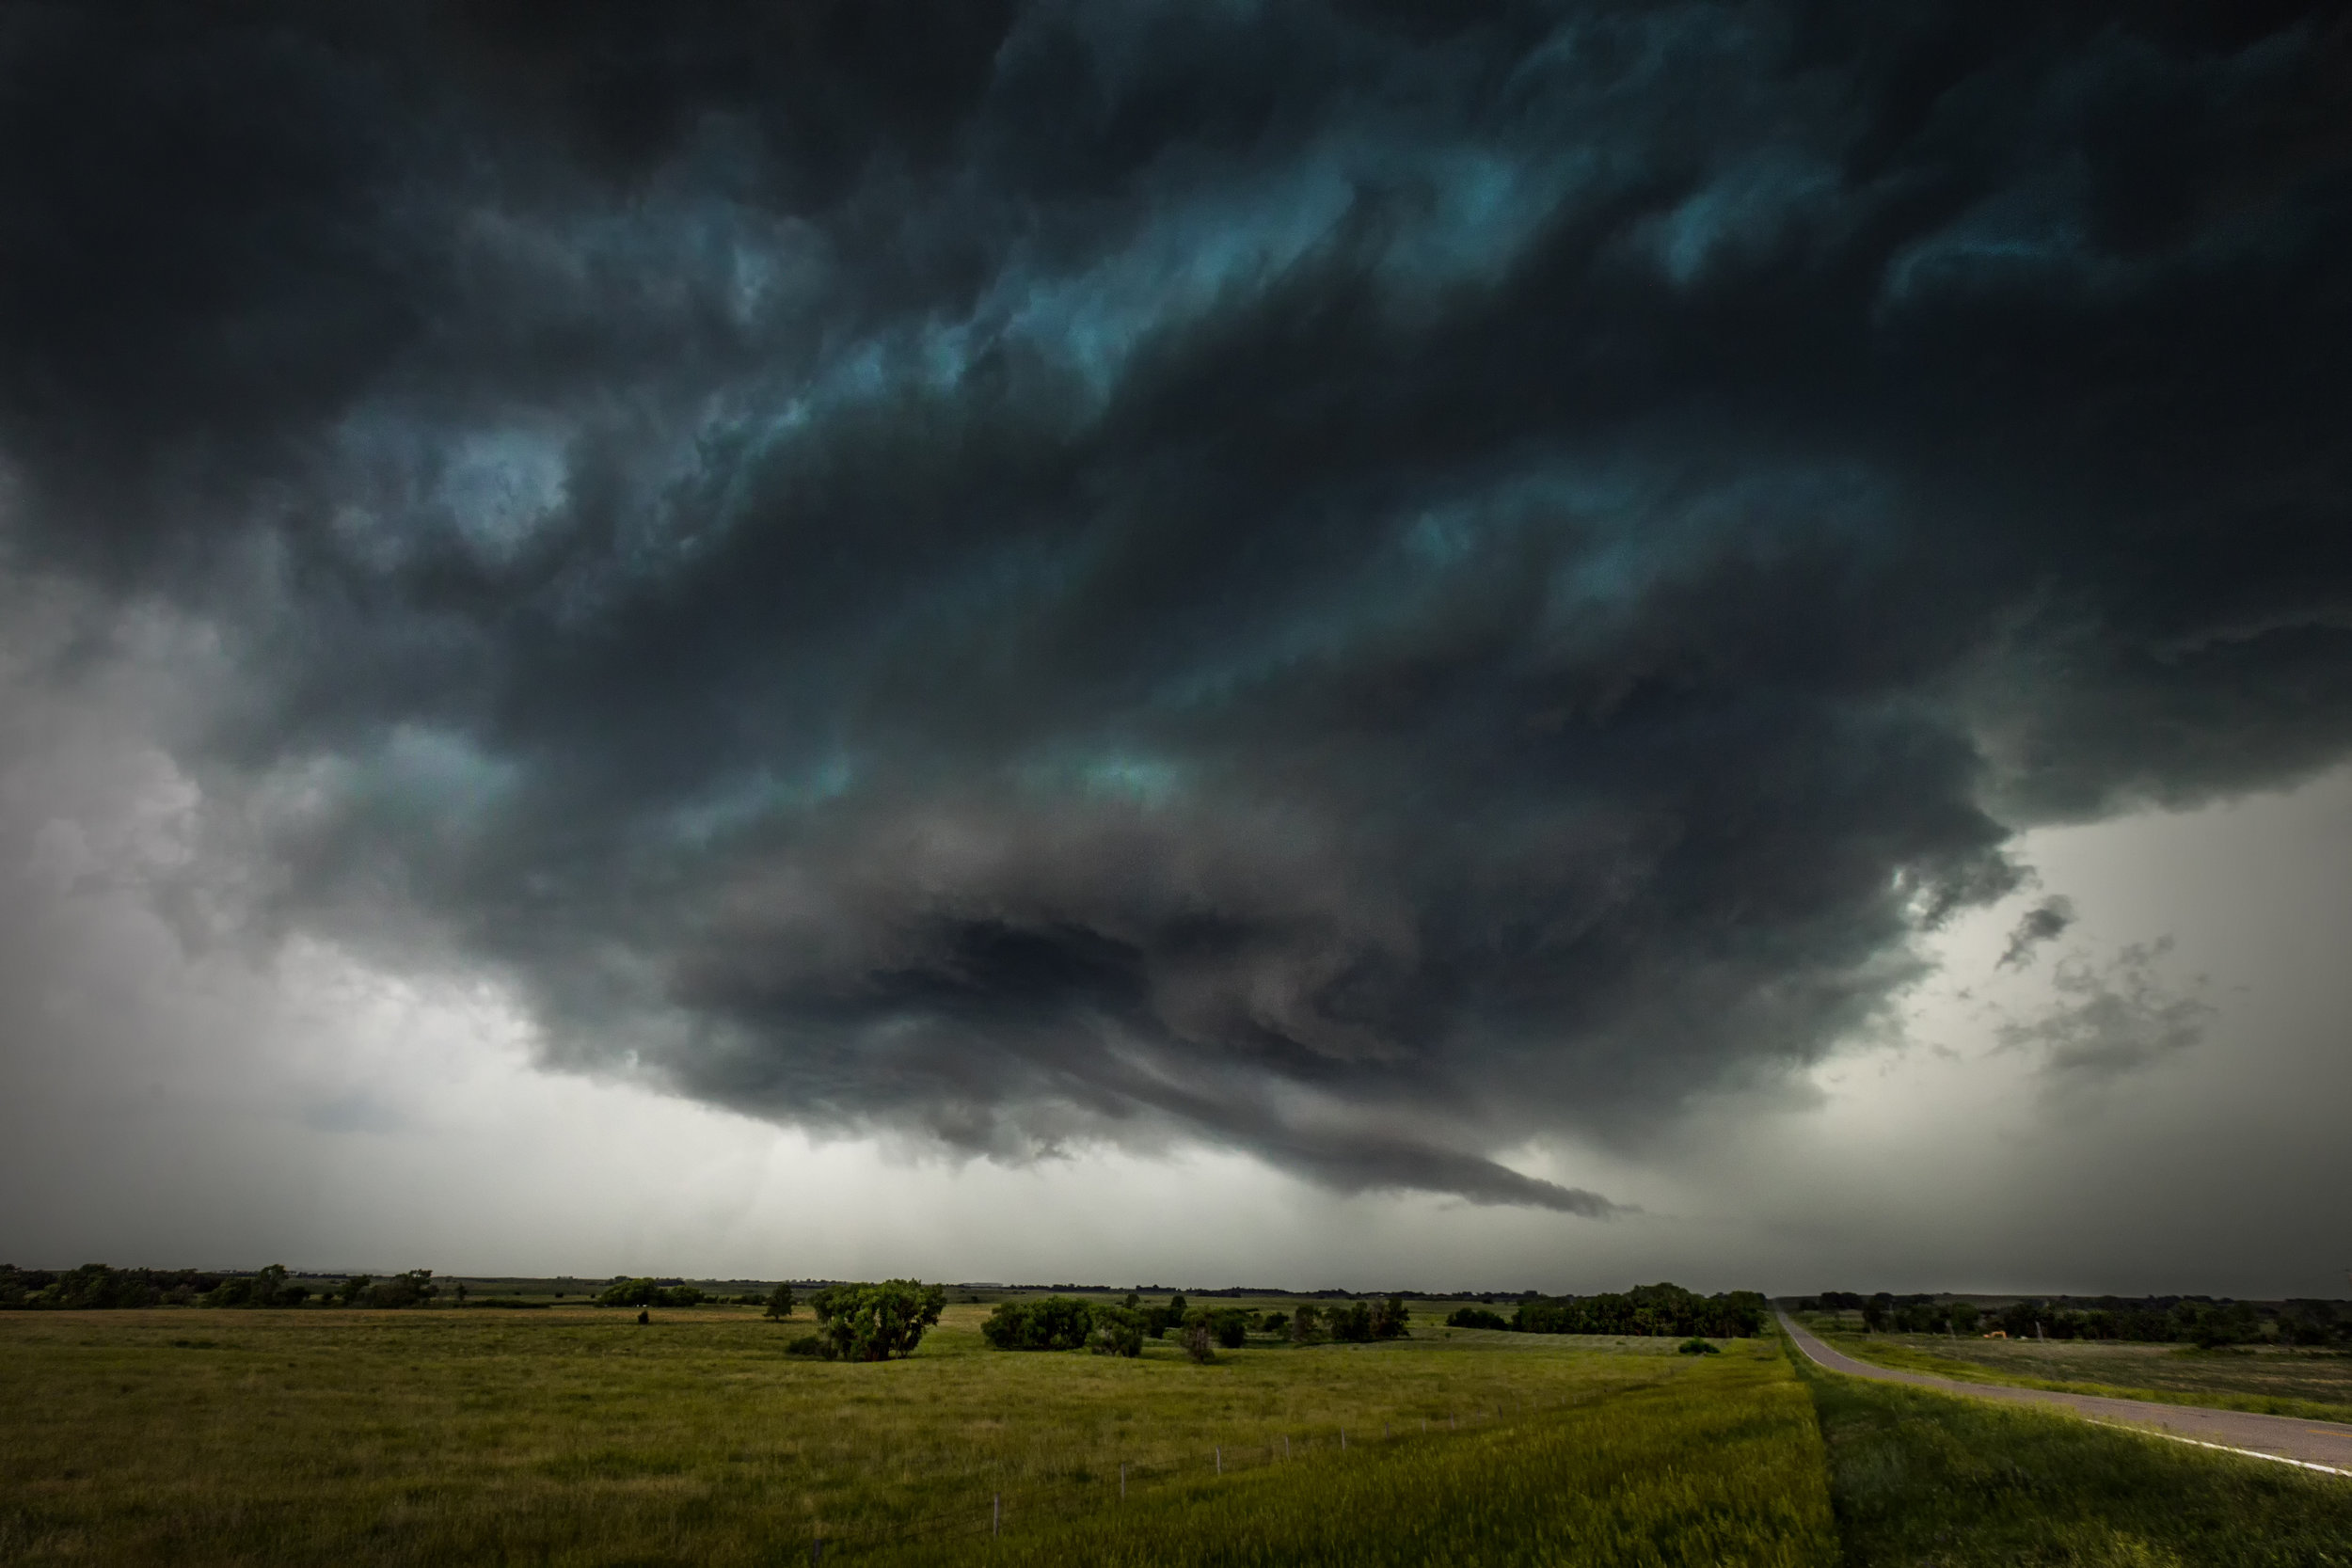 Wall Cloud - Naper, Nebraska June 13, 2017.jpg